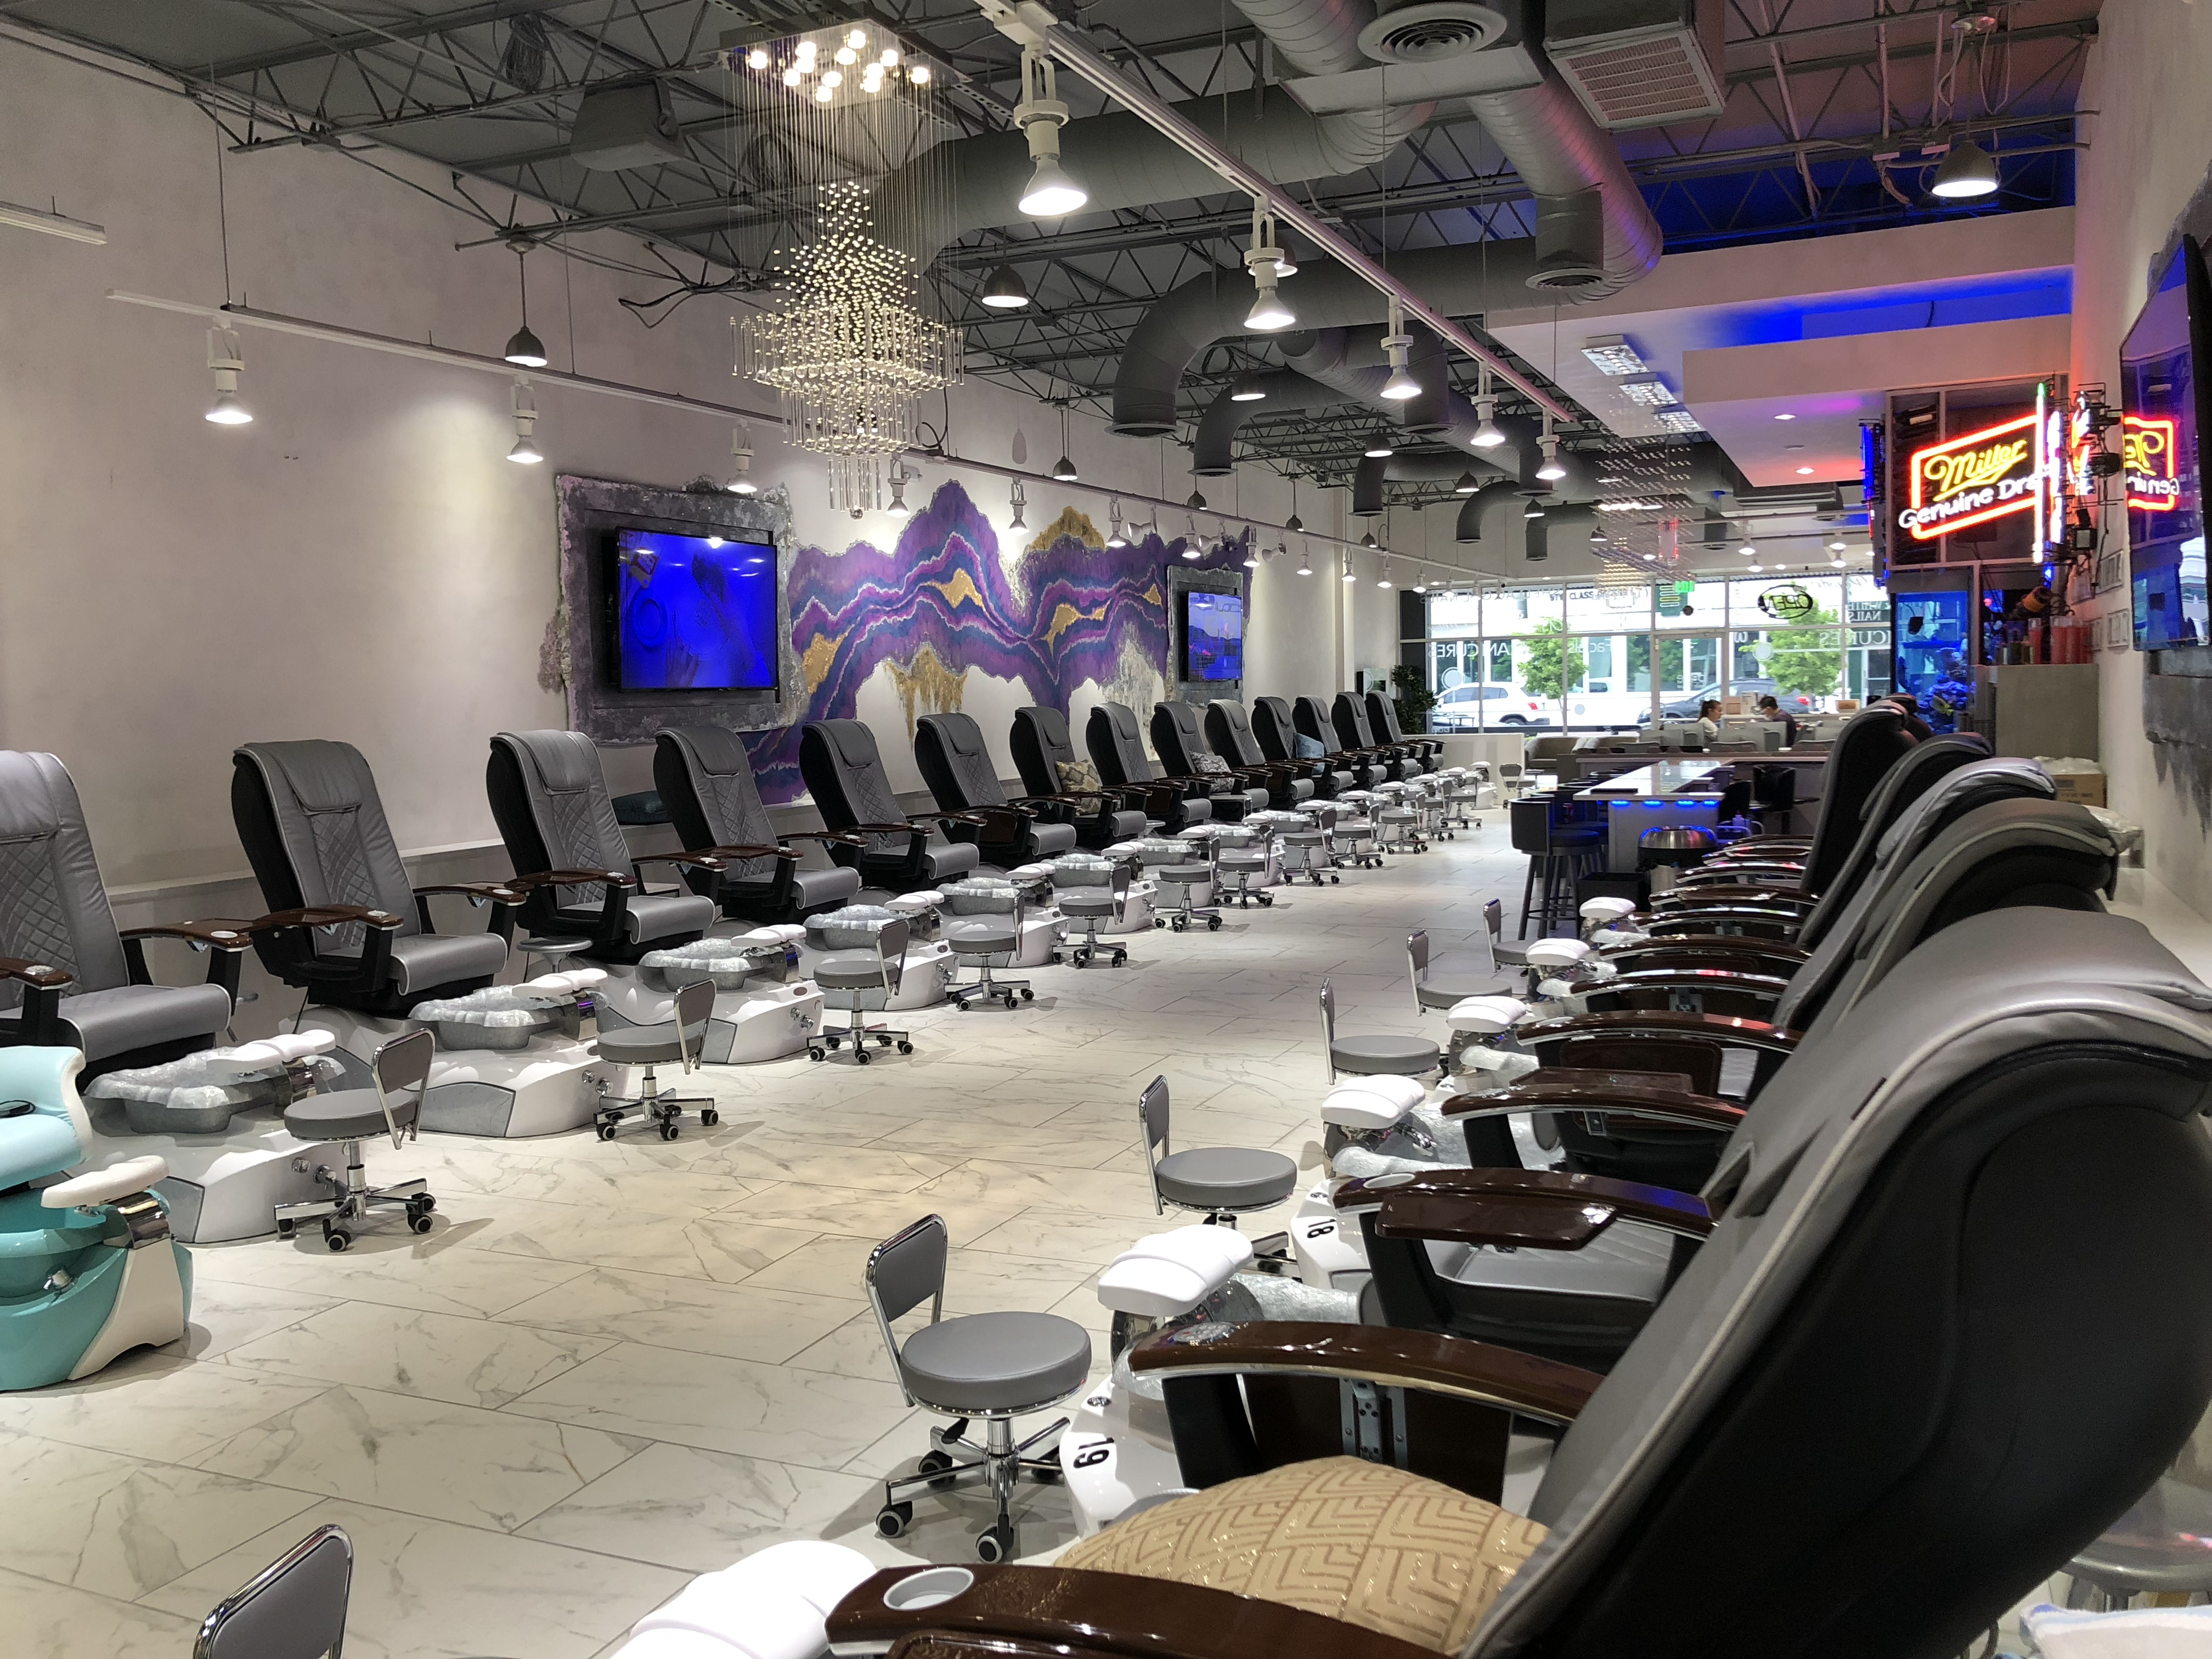 Bebe Nails and Spa - Nail salon in Tulsa, OK 74105